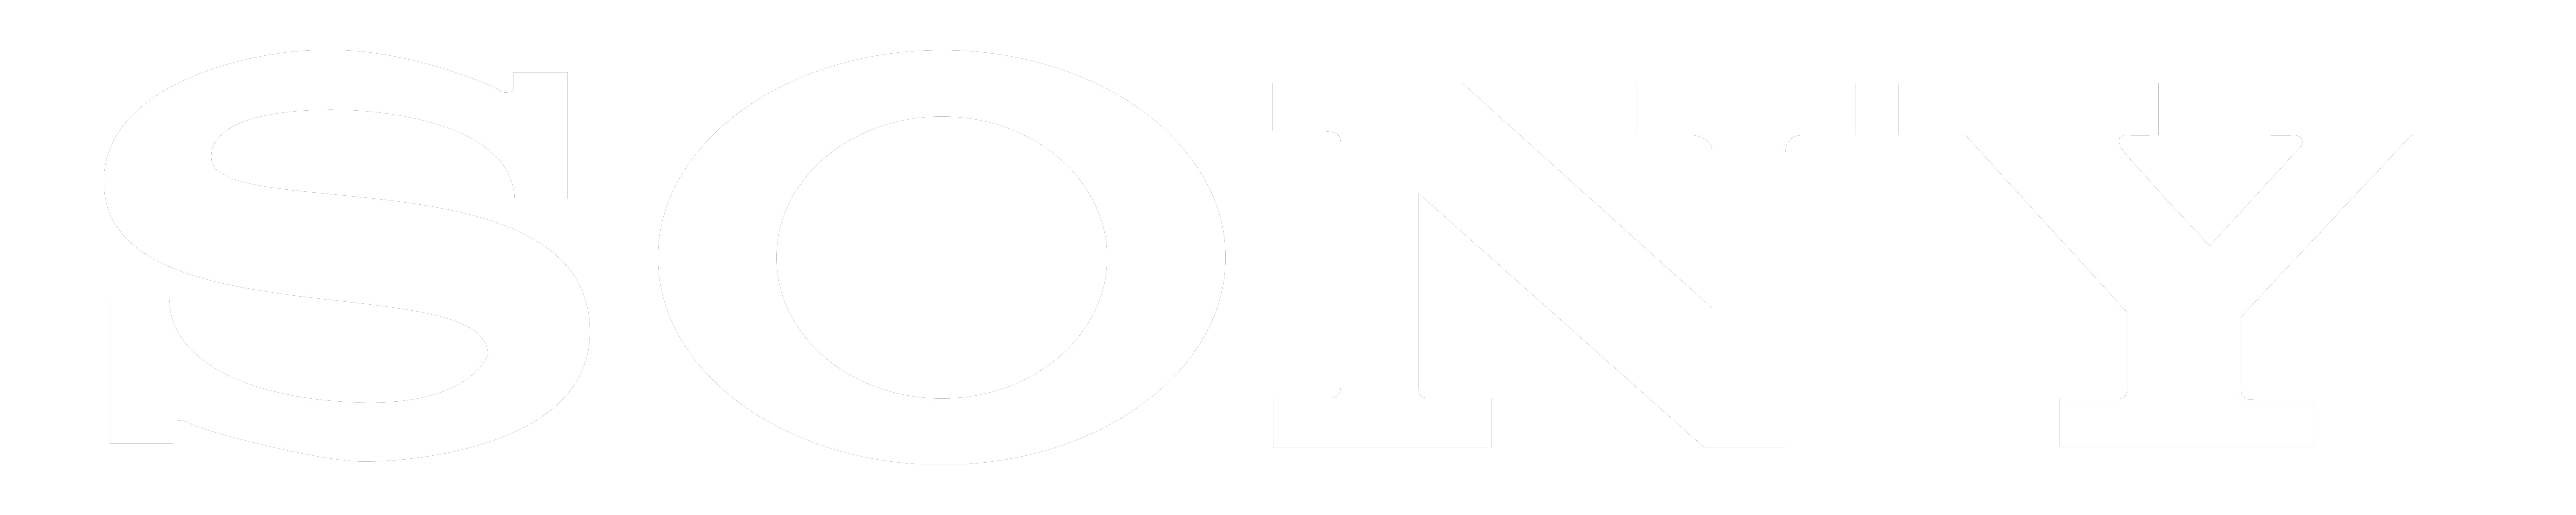 Sony Logo Eps PNG Transparent Sony Logo Eps.PNG Images.